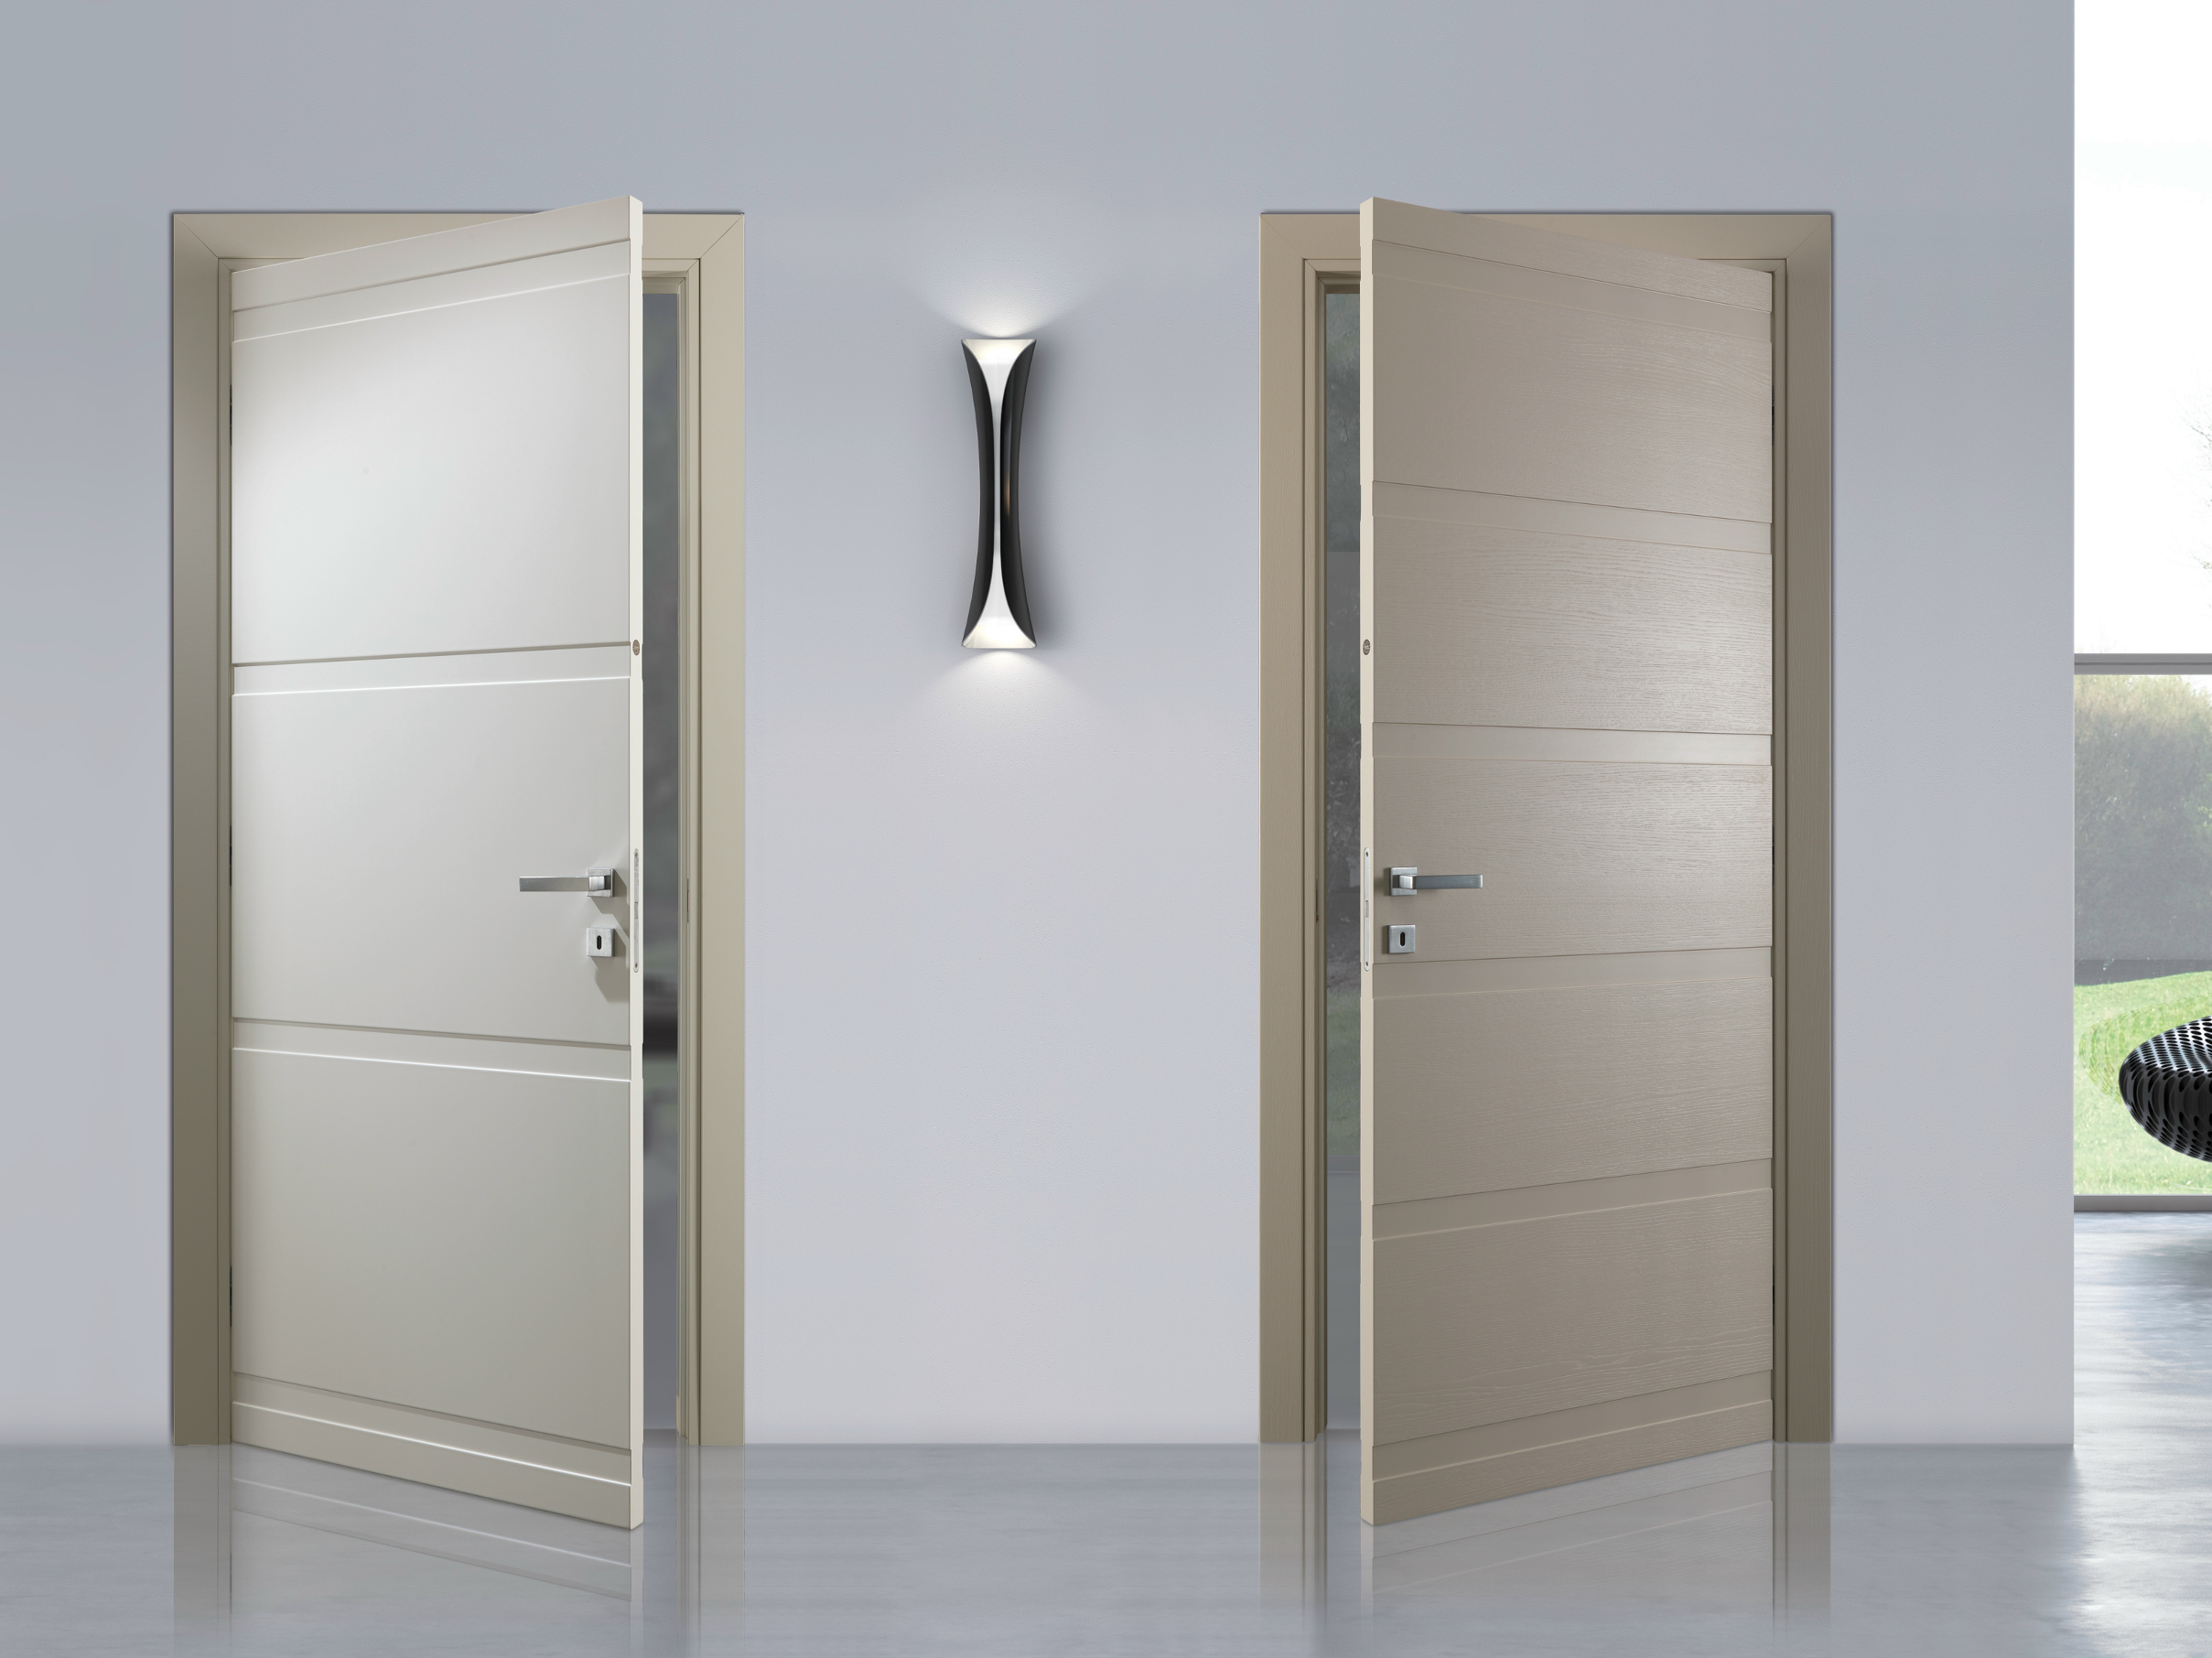 Hinged lacquered door fashion by bertolotto porte for Porte a porte clothing